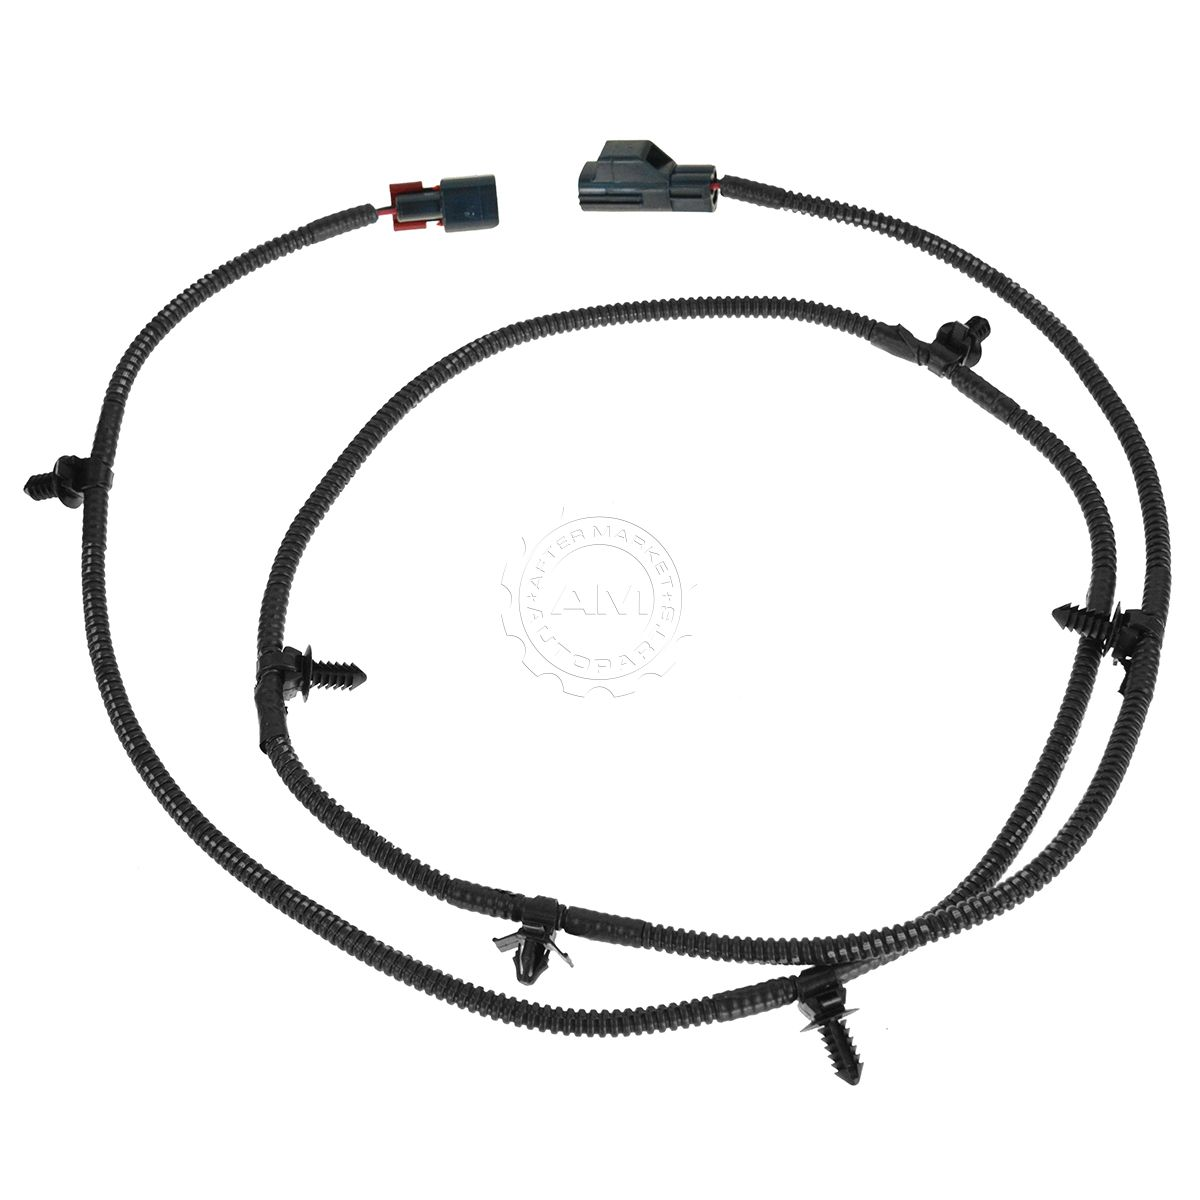 Mopar Under Hood Lamp Light Wiring Harness For Chrysler Dodge Jeep 300 Diagrams Schematics Inside 2005 Diagram